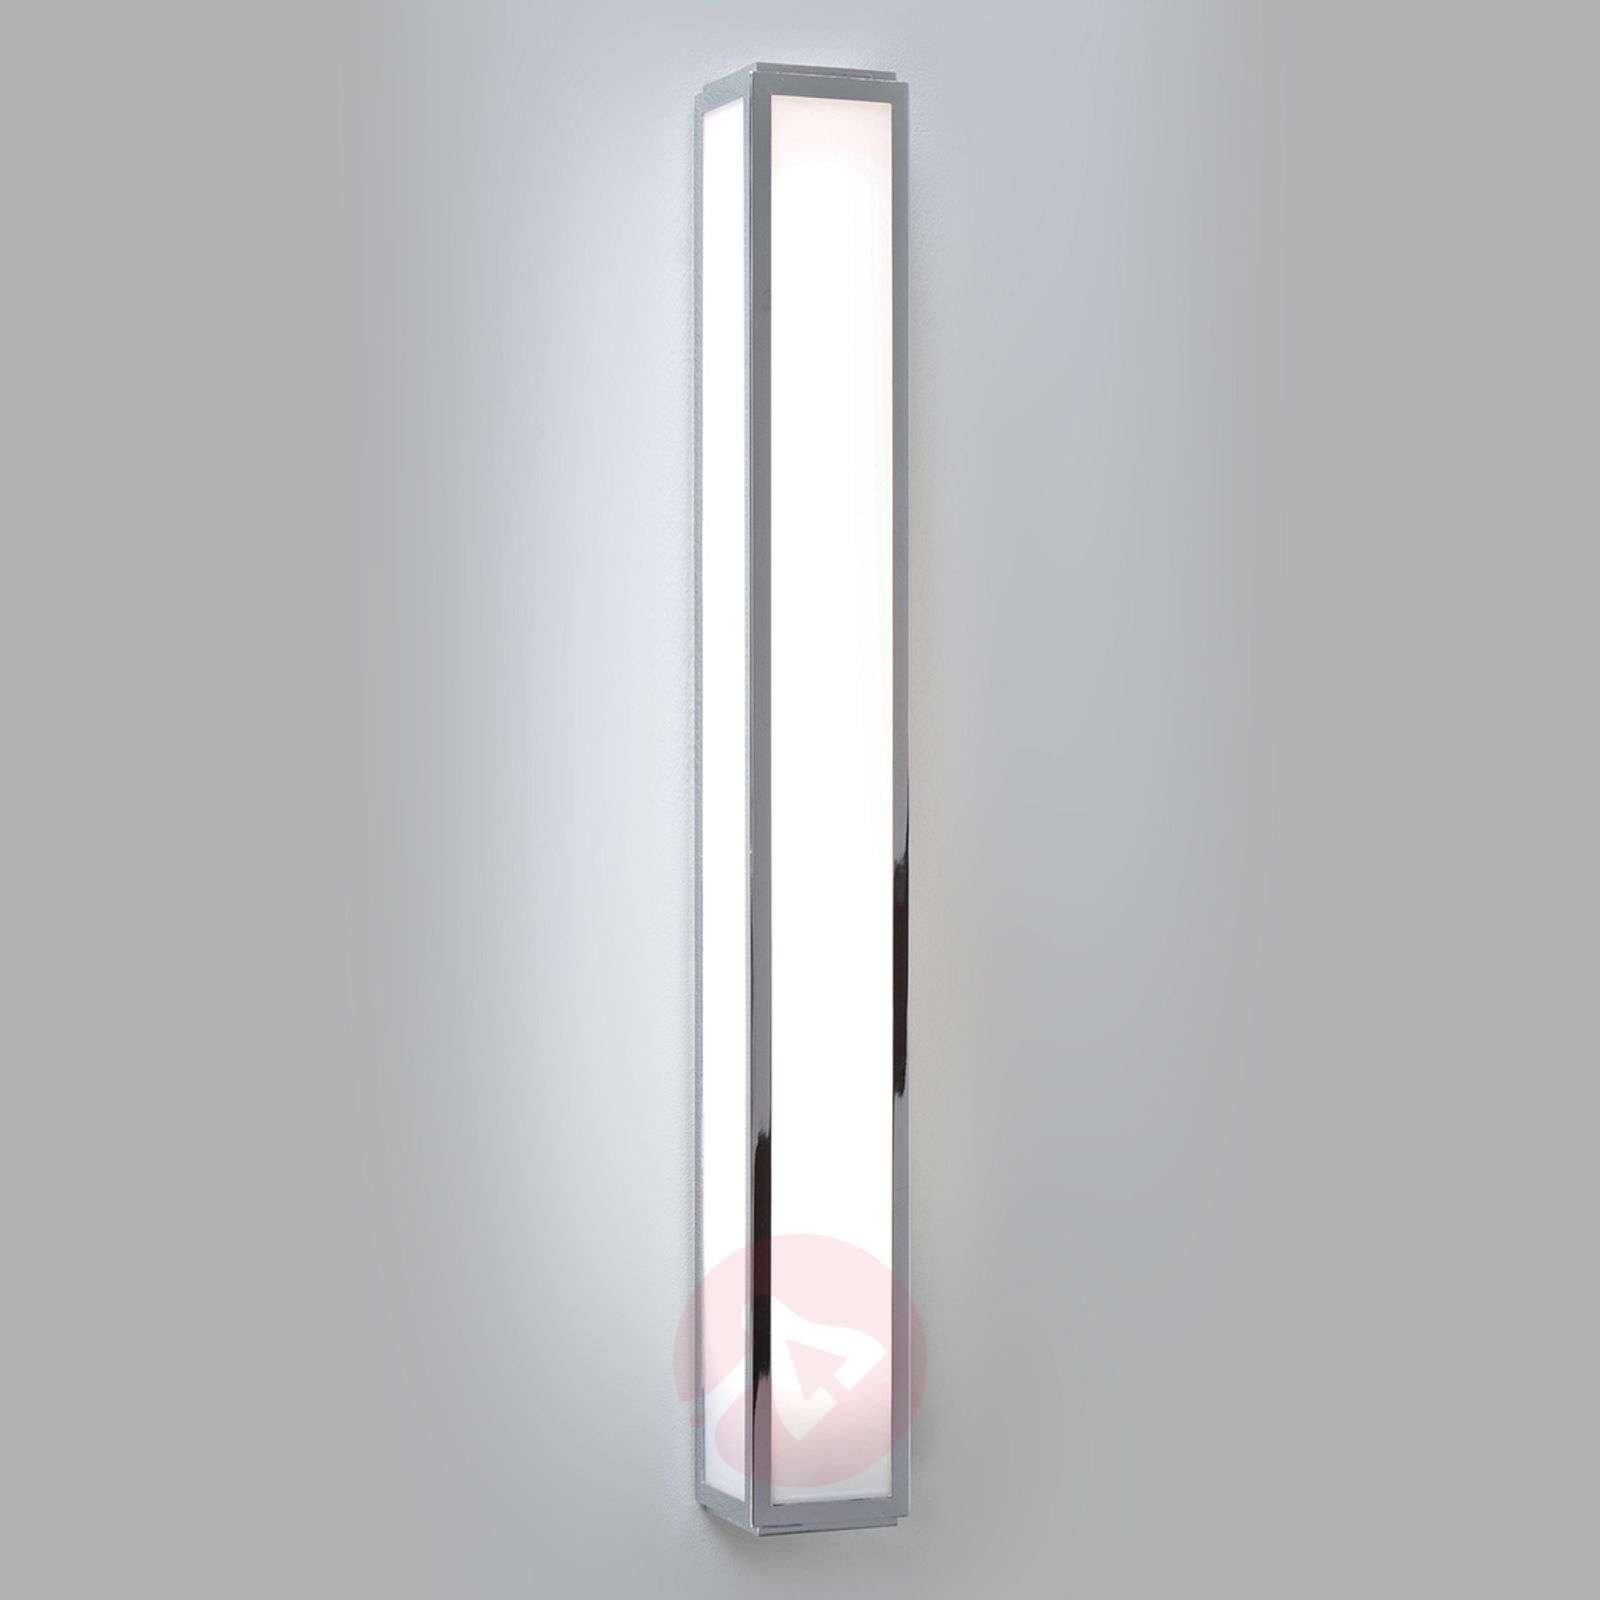 Mashiko 600 Wall Light Elegant-1020381-02